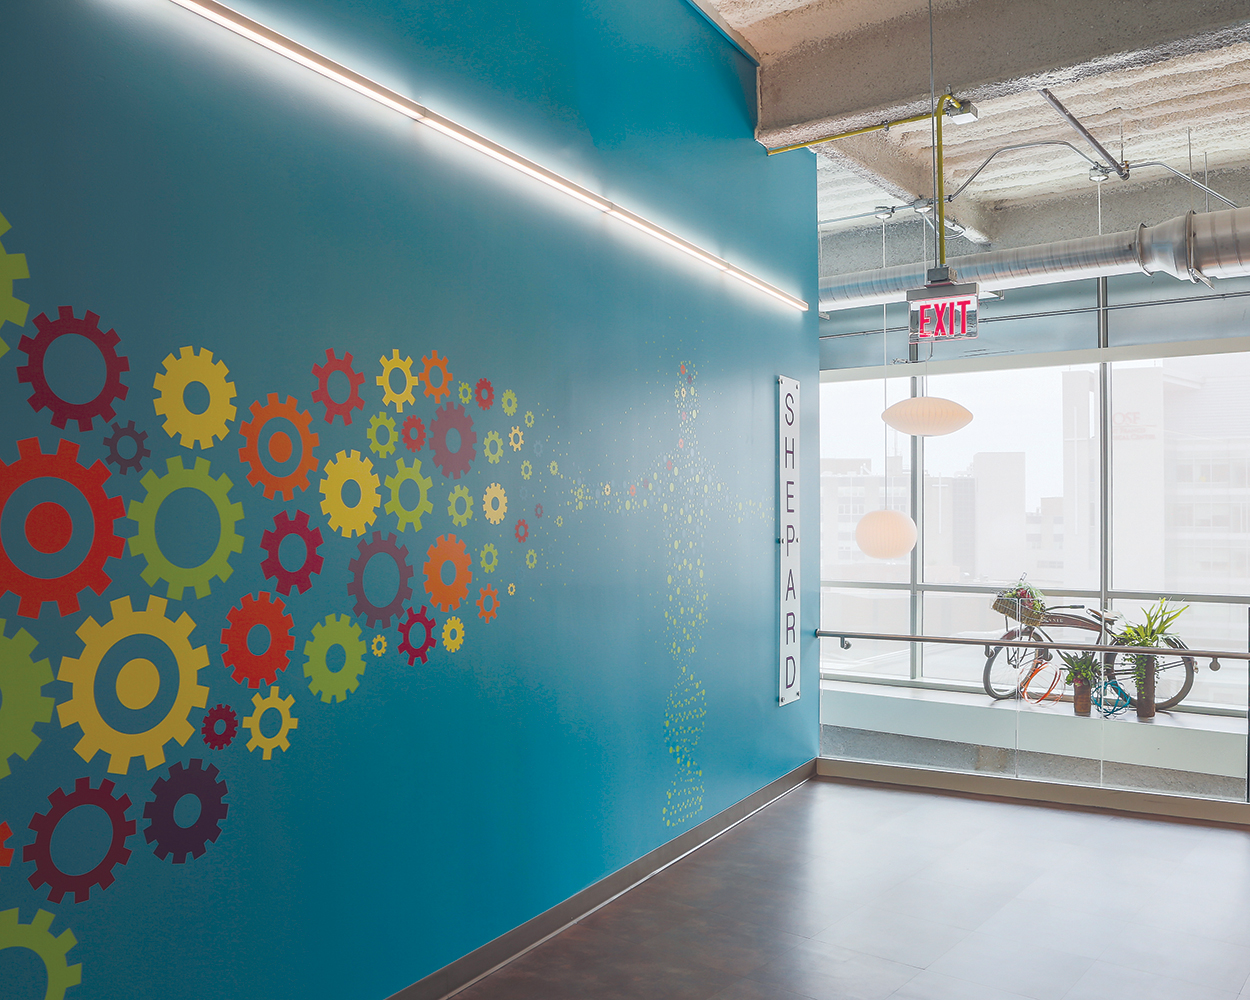 Sleight illuminates a blue wall with colorful gear icons for a modern office lighting design.